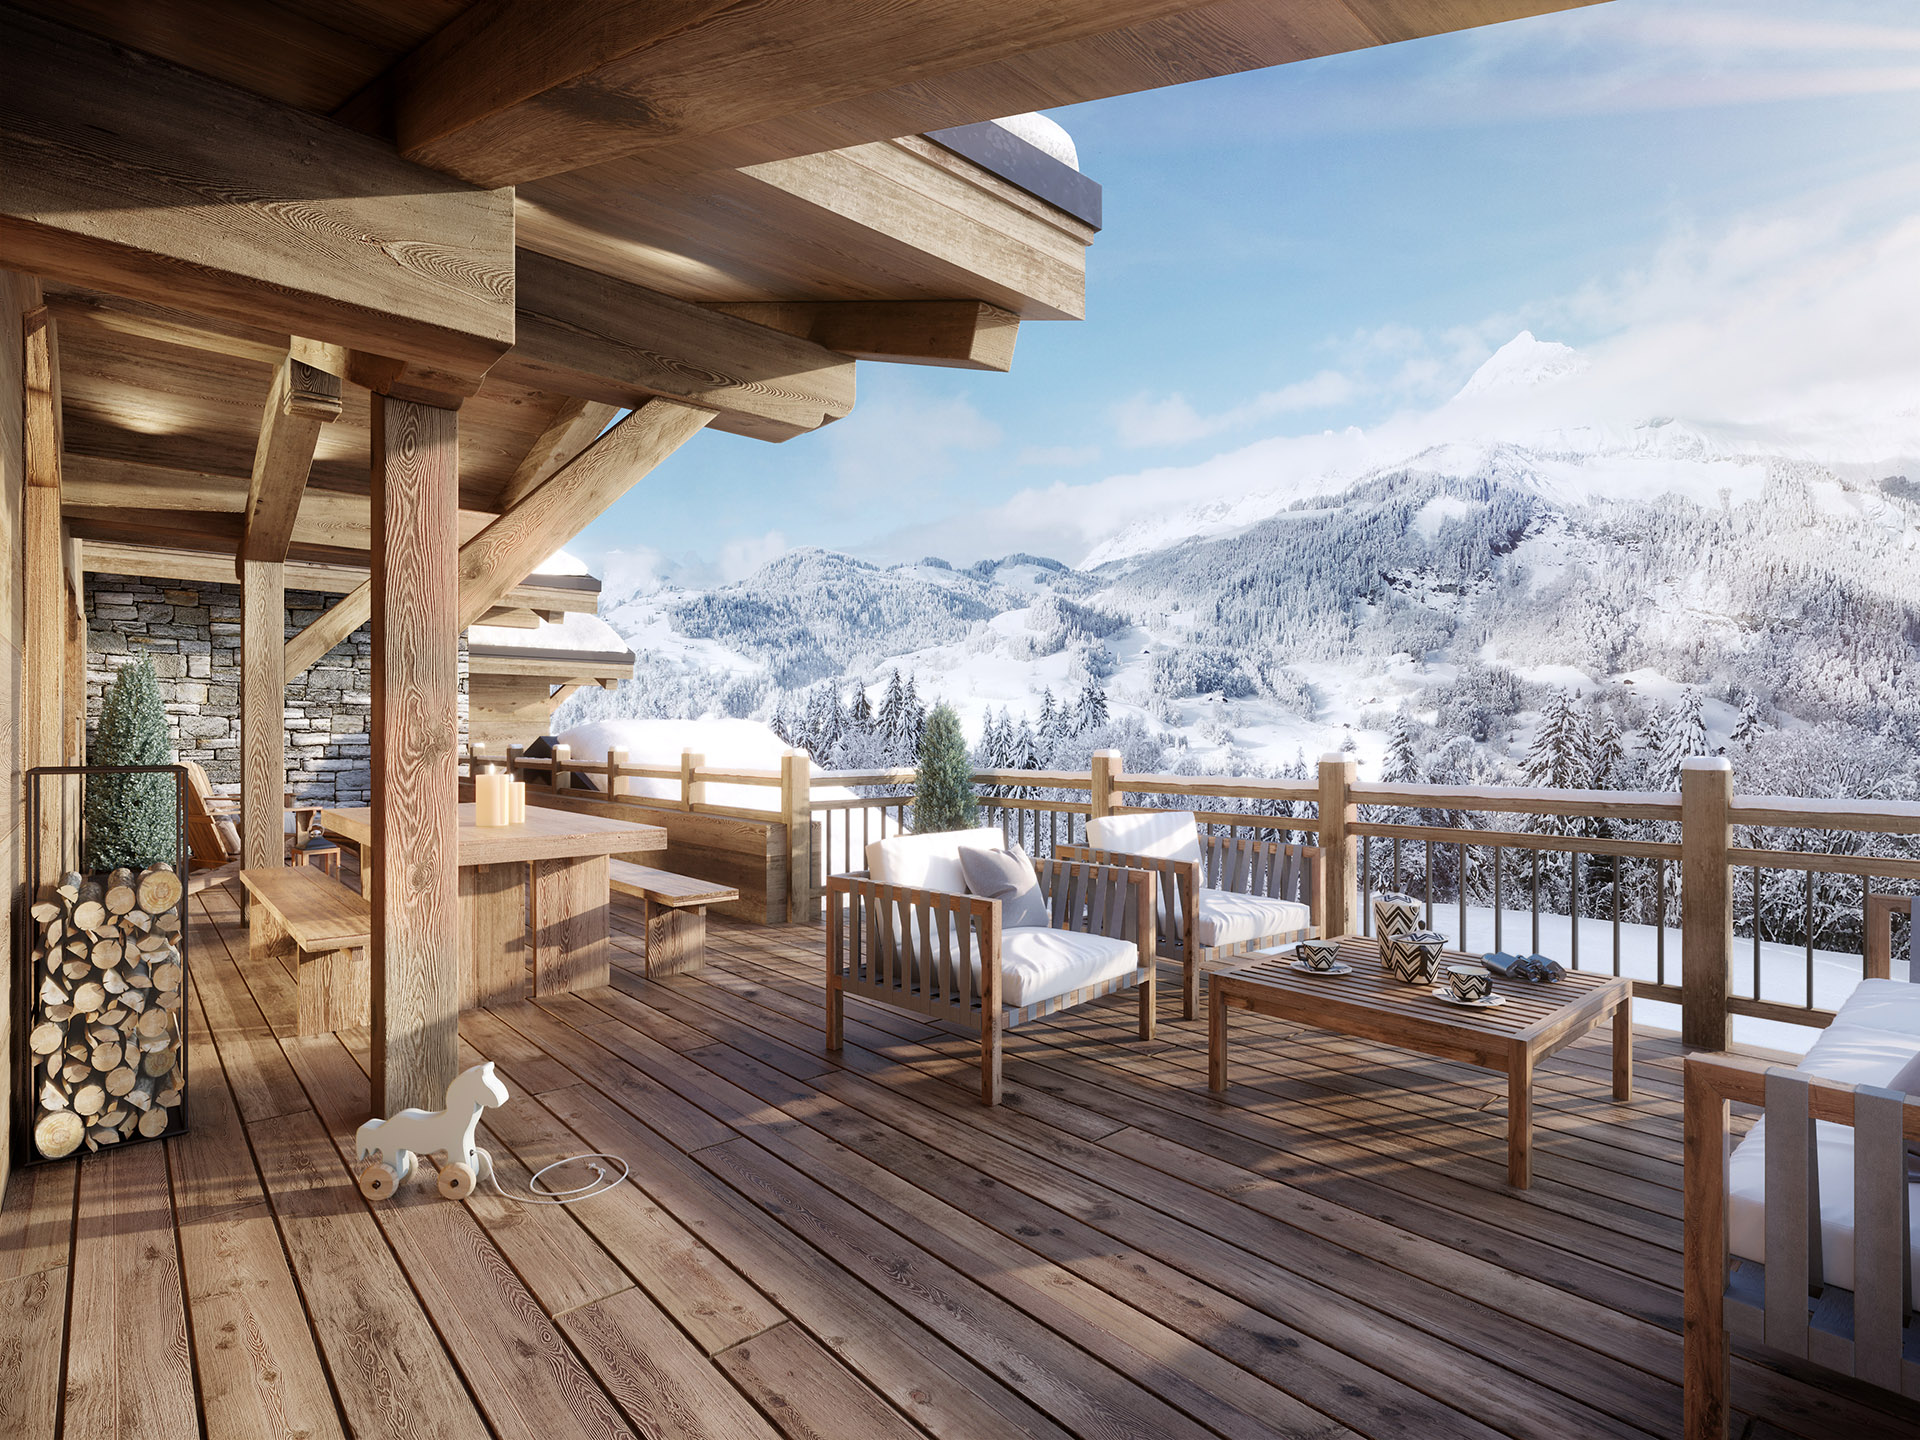 3D perspective of a chalet terrace with a view on the snowy mountain